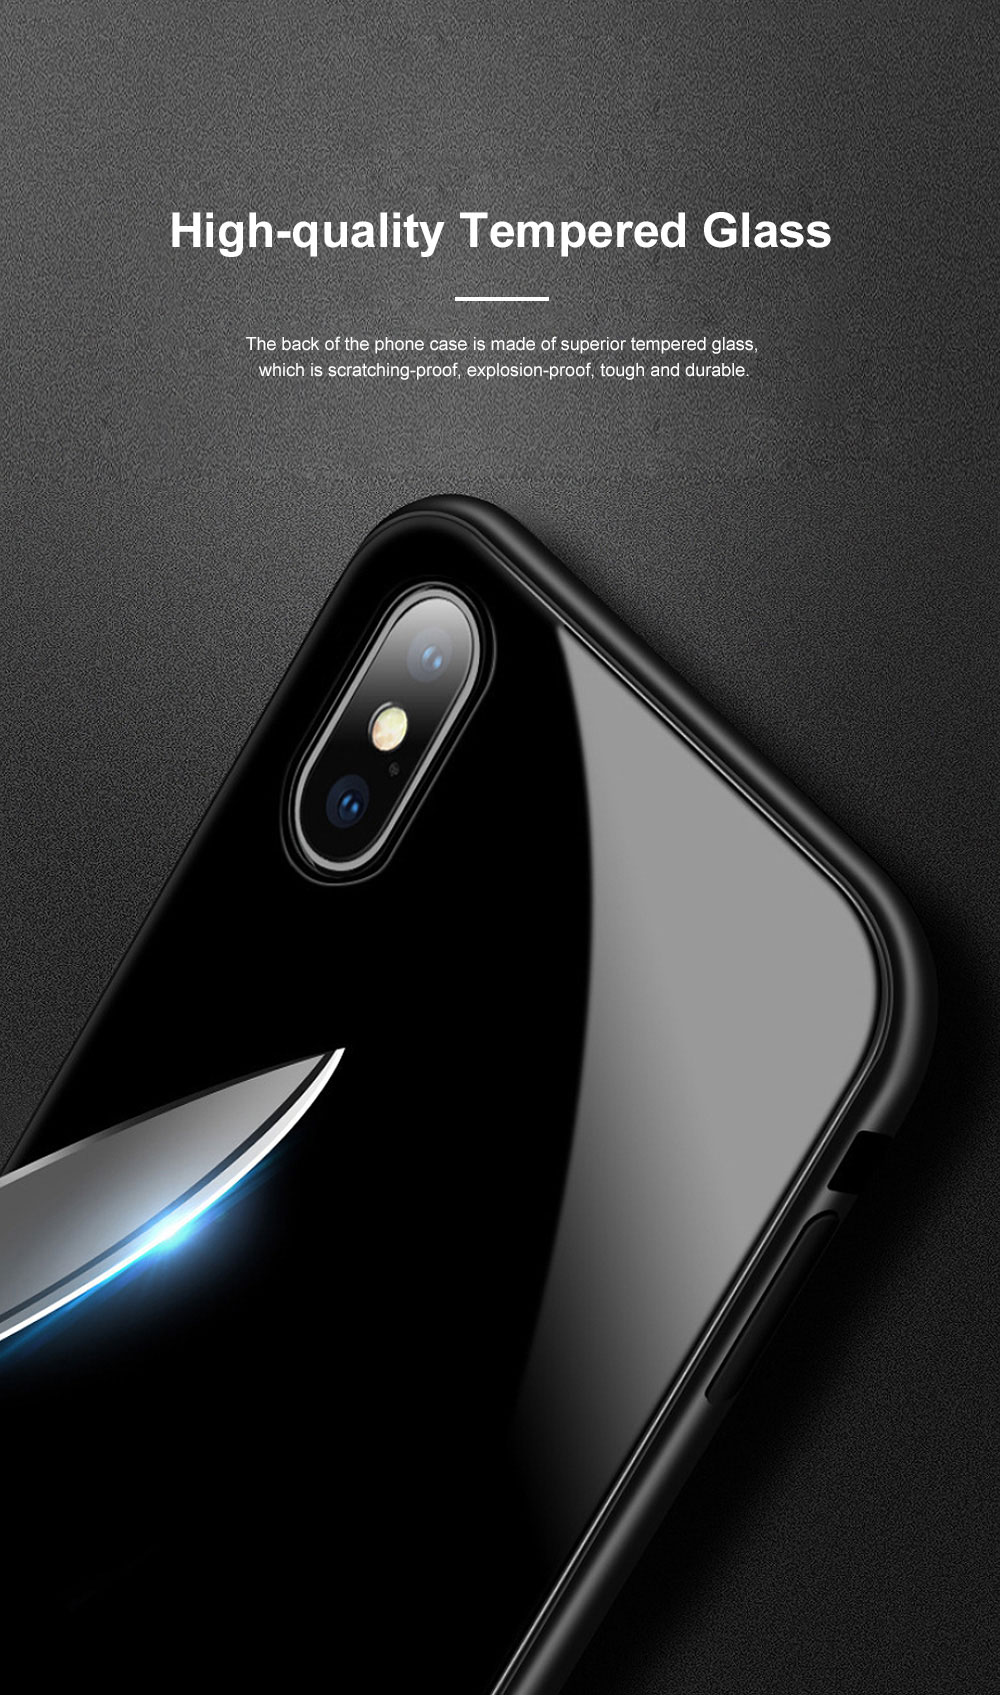 Minimalist Delicate Firmed Magnetic Catche Glass Samsung Phone Case Shock-proof Aluminum Alloy Phone Protective Cover For Samsung note 9, Samsung S9, Samsung s9 plus 1